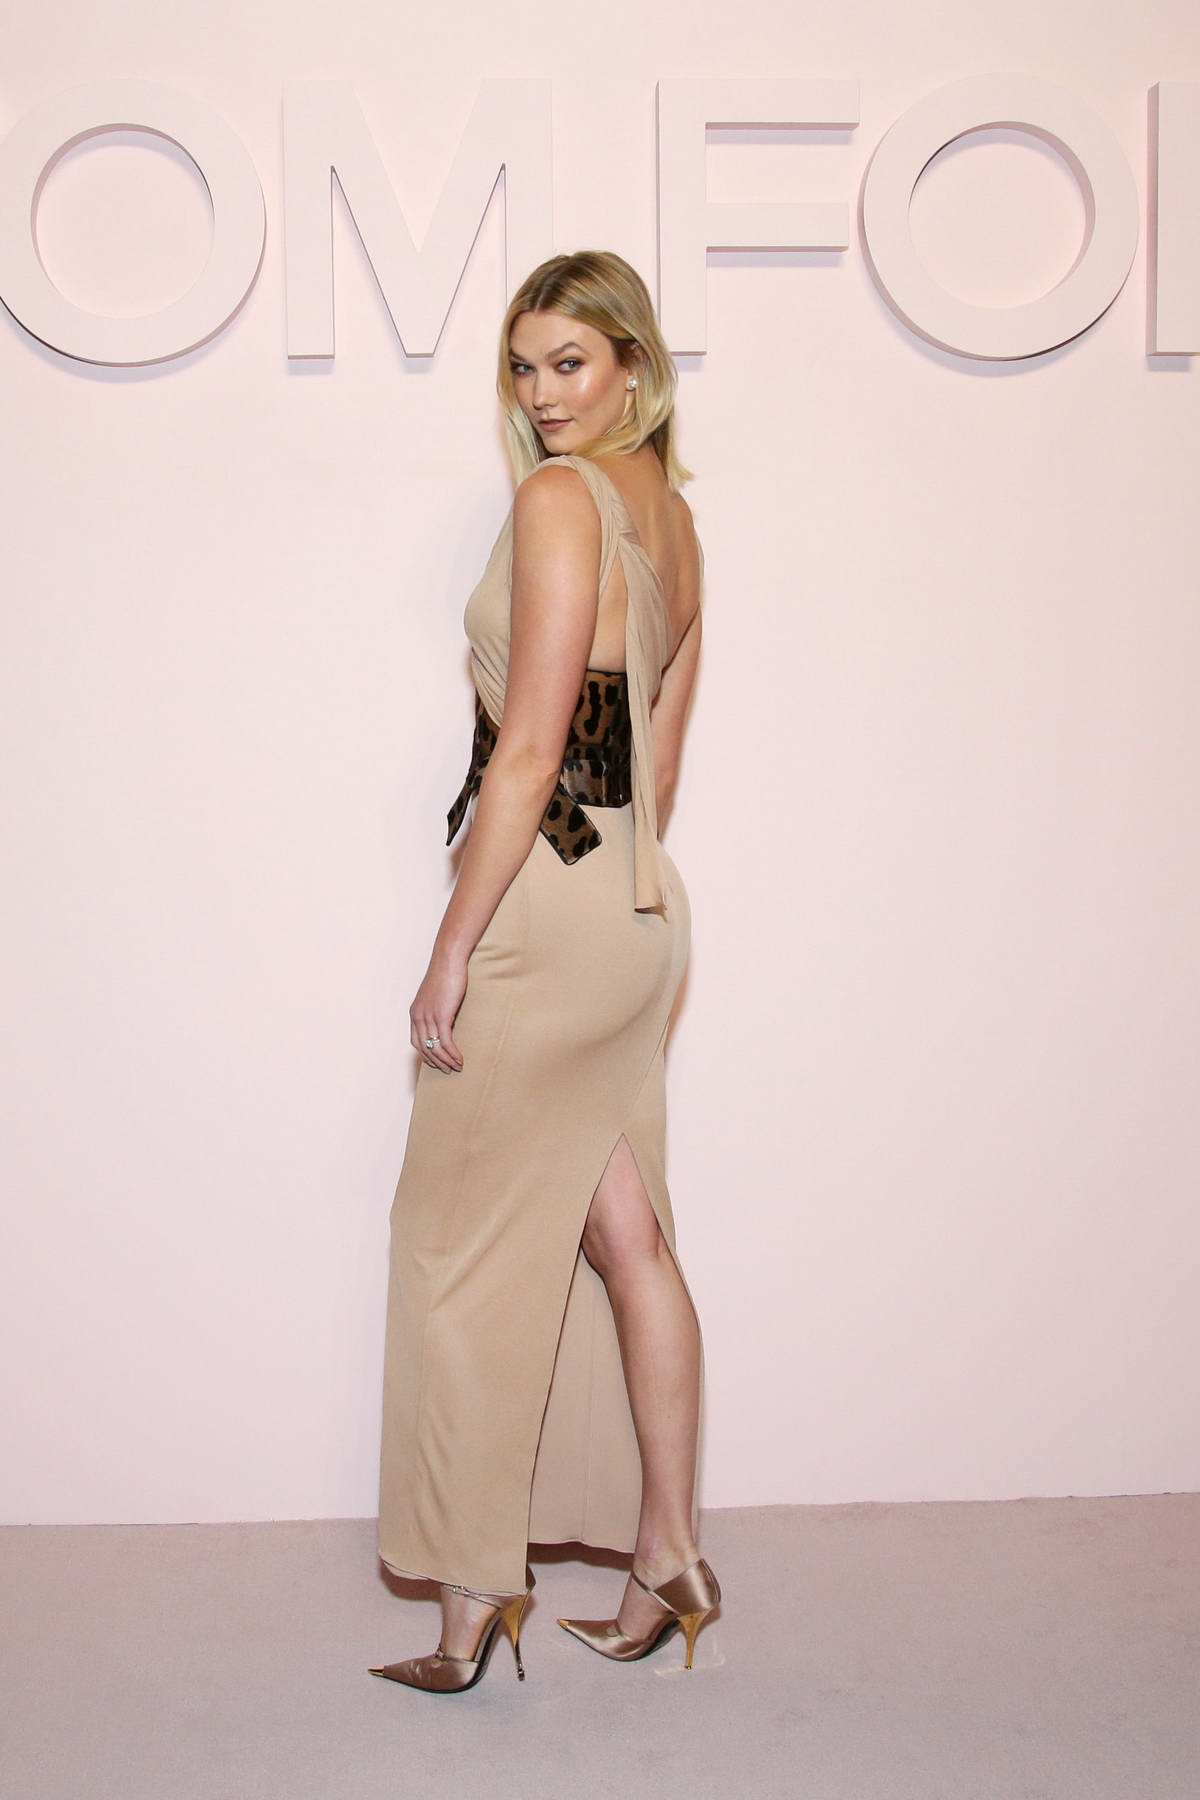 Karlie Kloss attends Tom Ford Fashion Show in New York City